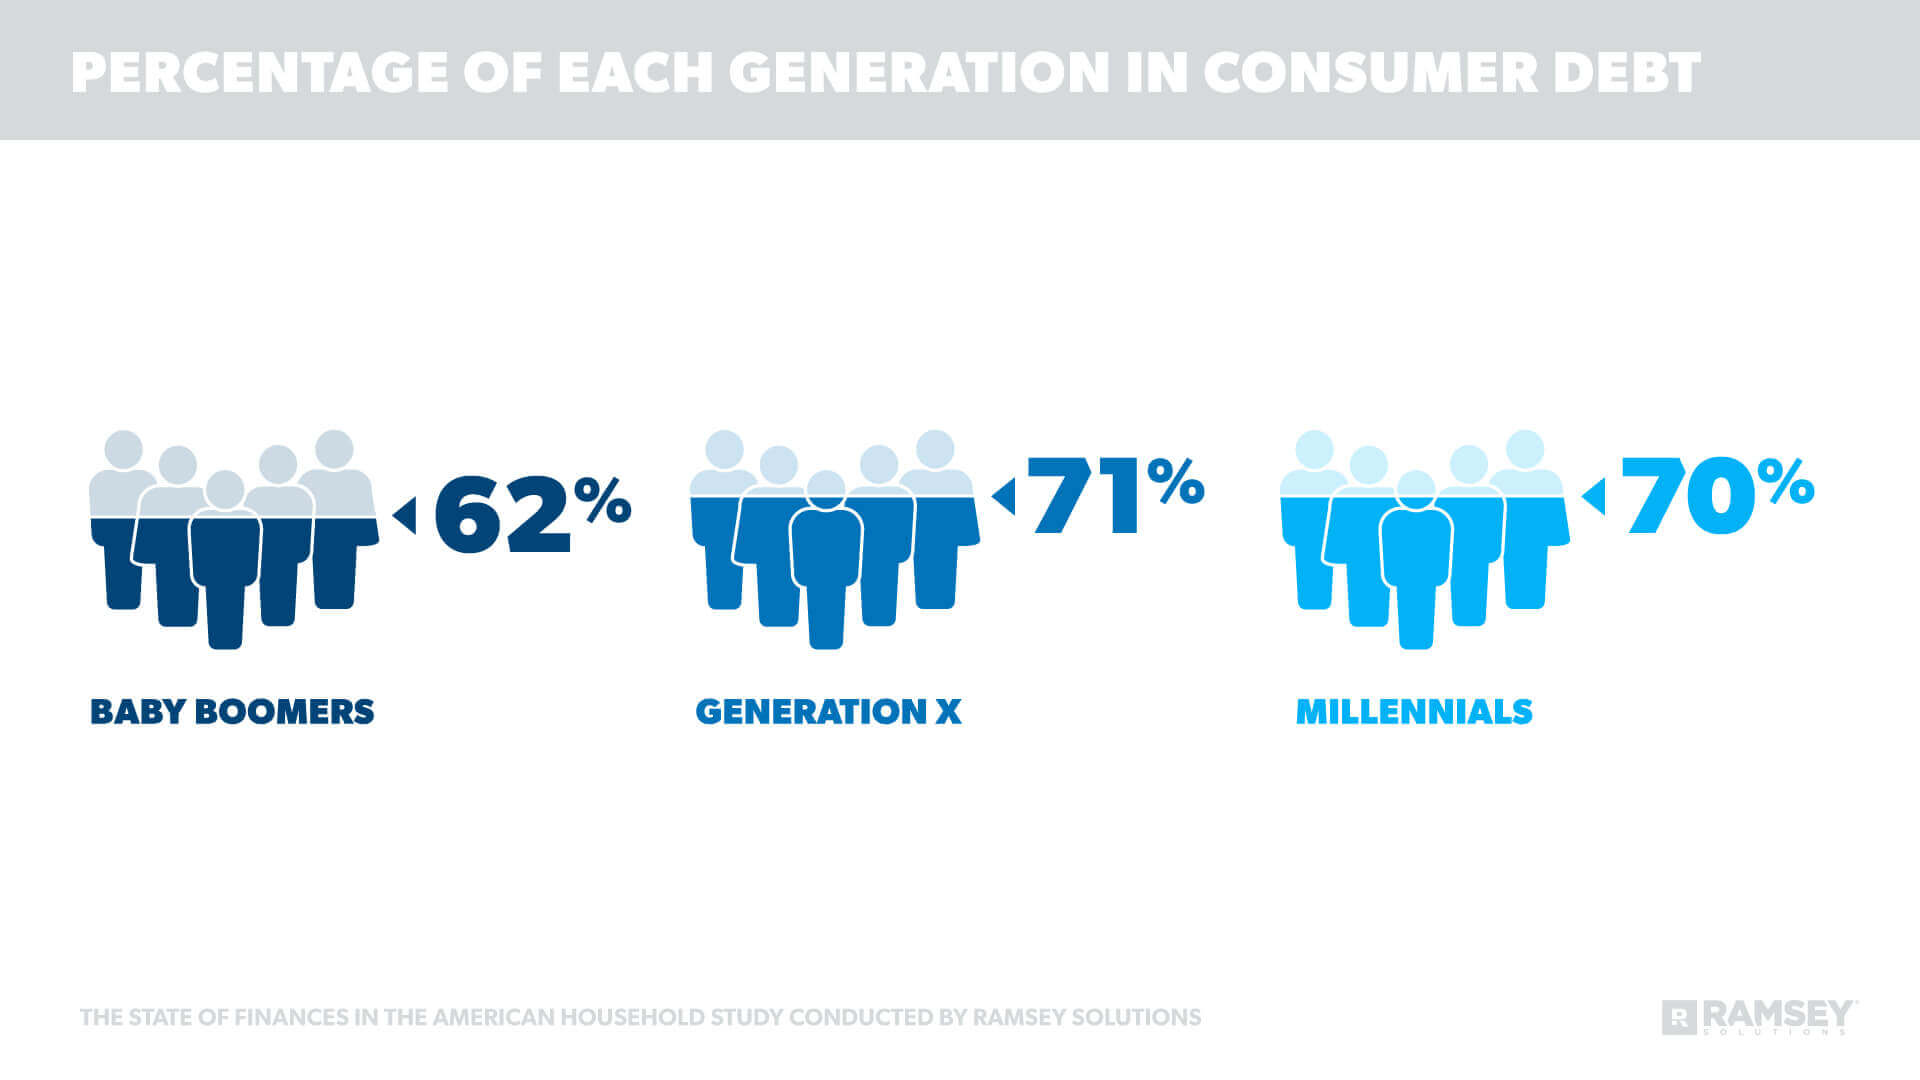 Percentage of Each Generation in Consumer Debt